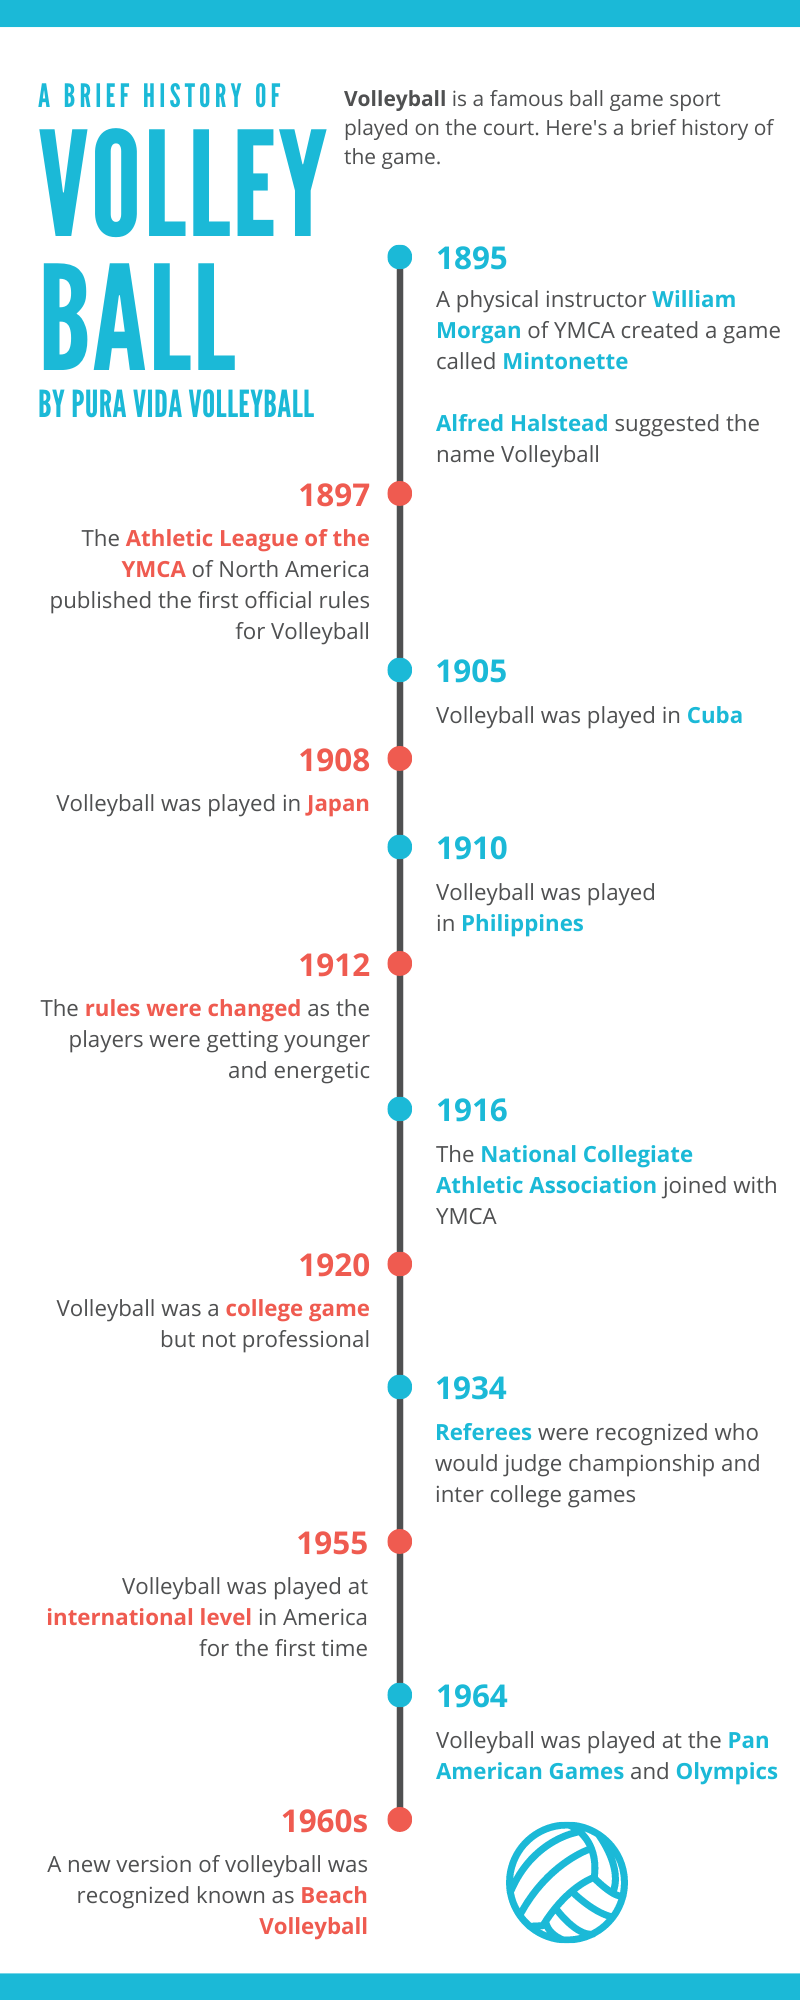 What Year Did Volleyball Start Fun Facts By Pura Vida Volleyball In 2020 History Timeline Volleyball History